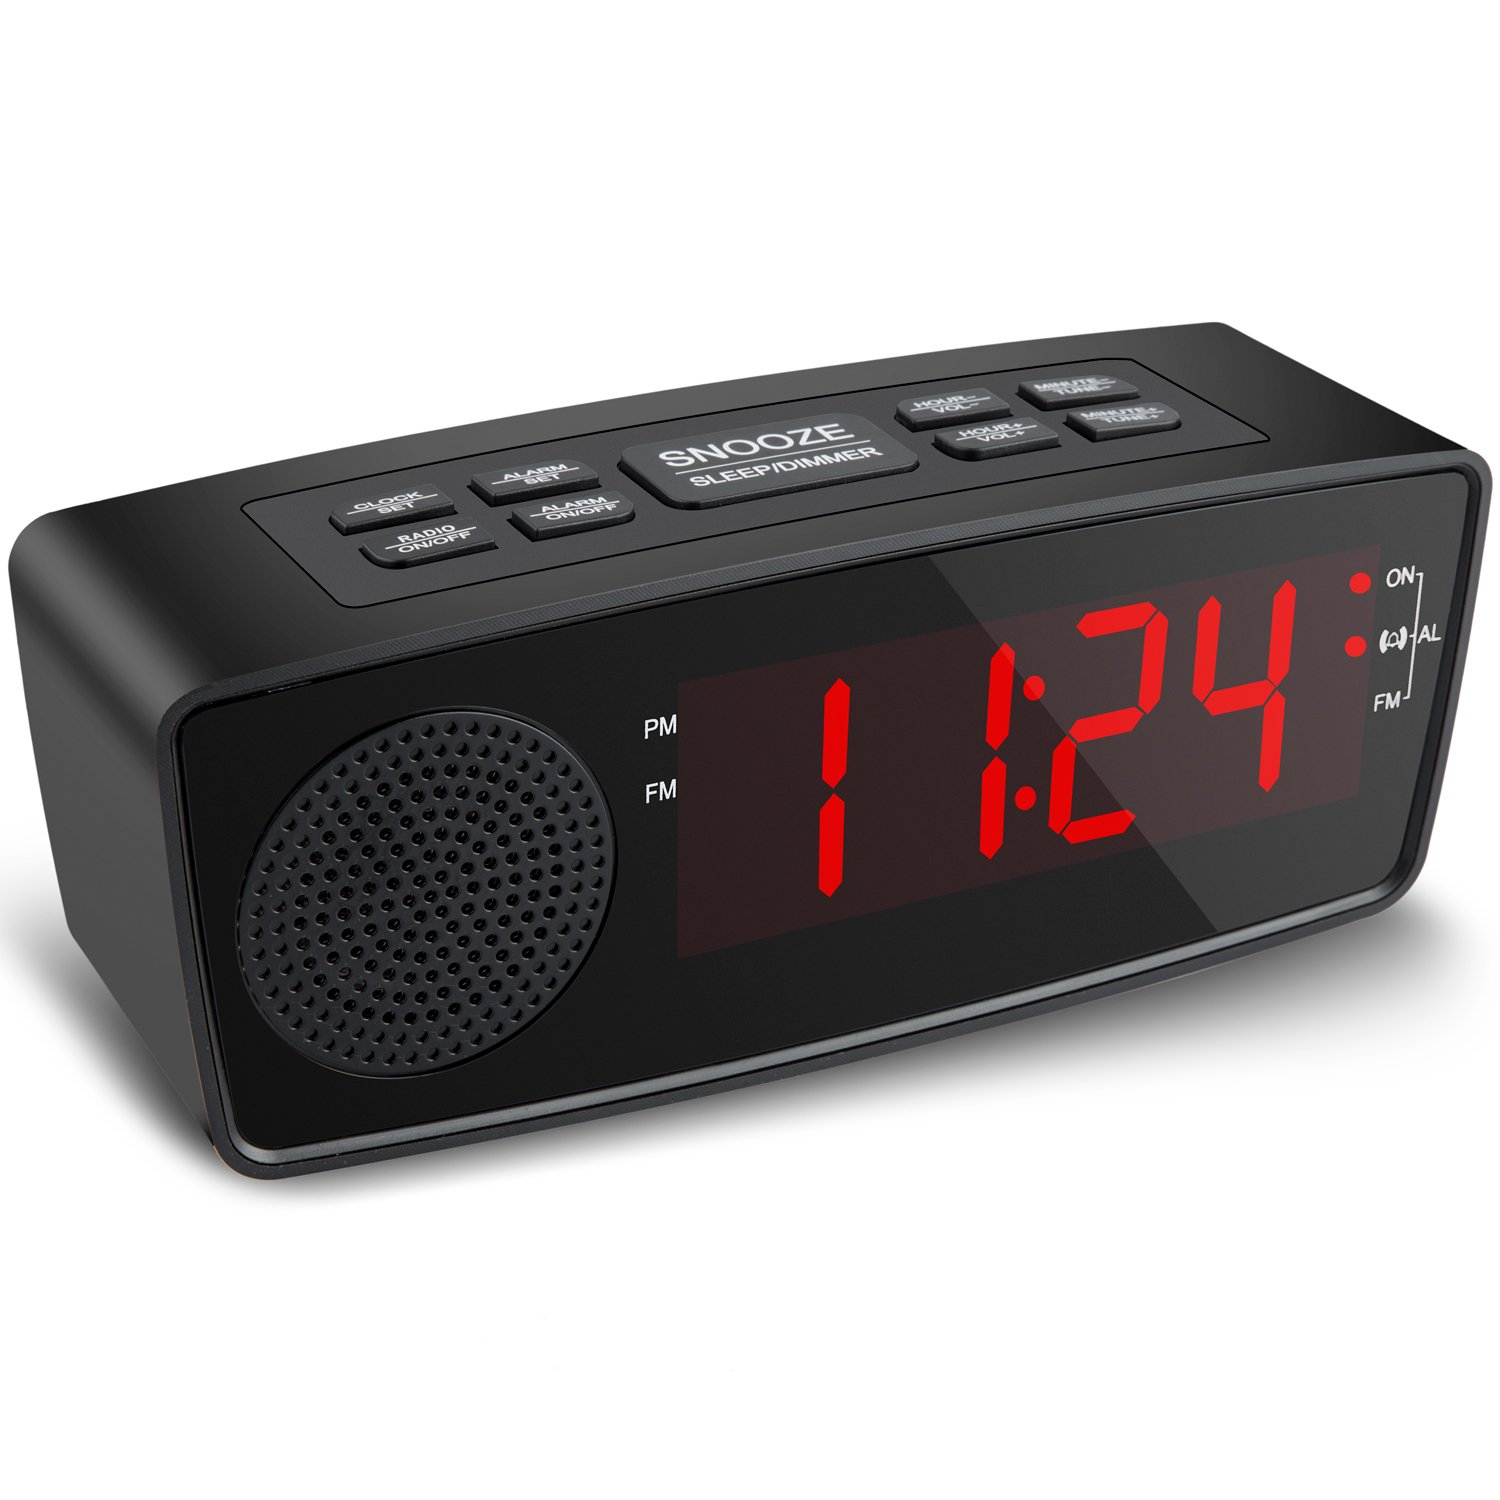 Clock Radios, Digital FM Alarm Radio Clock with USB Charging Port,LED Display, Dimmer, Sleep Timer, Snooze and Battery Backup for Bedrooms,Tables